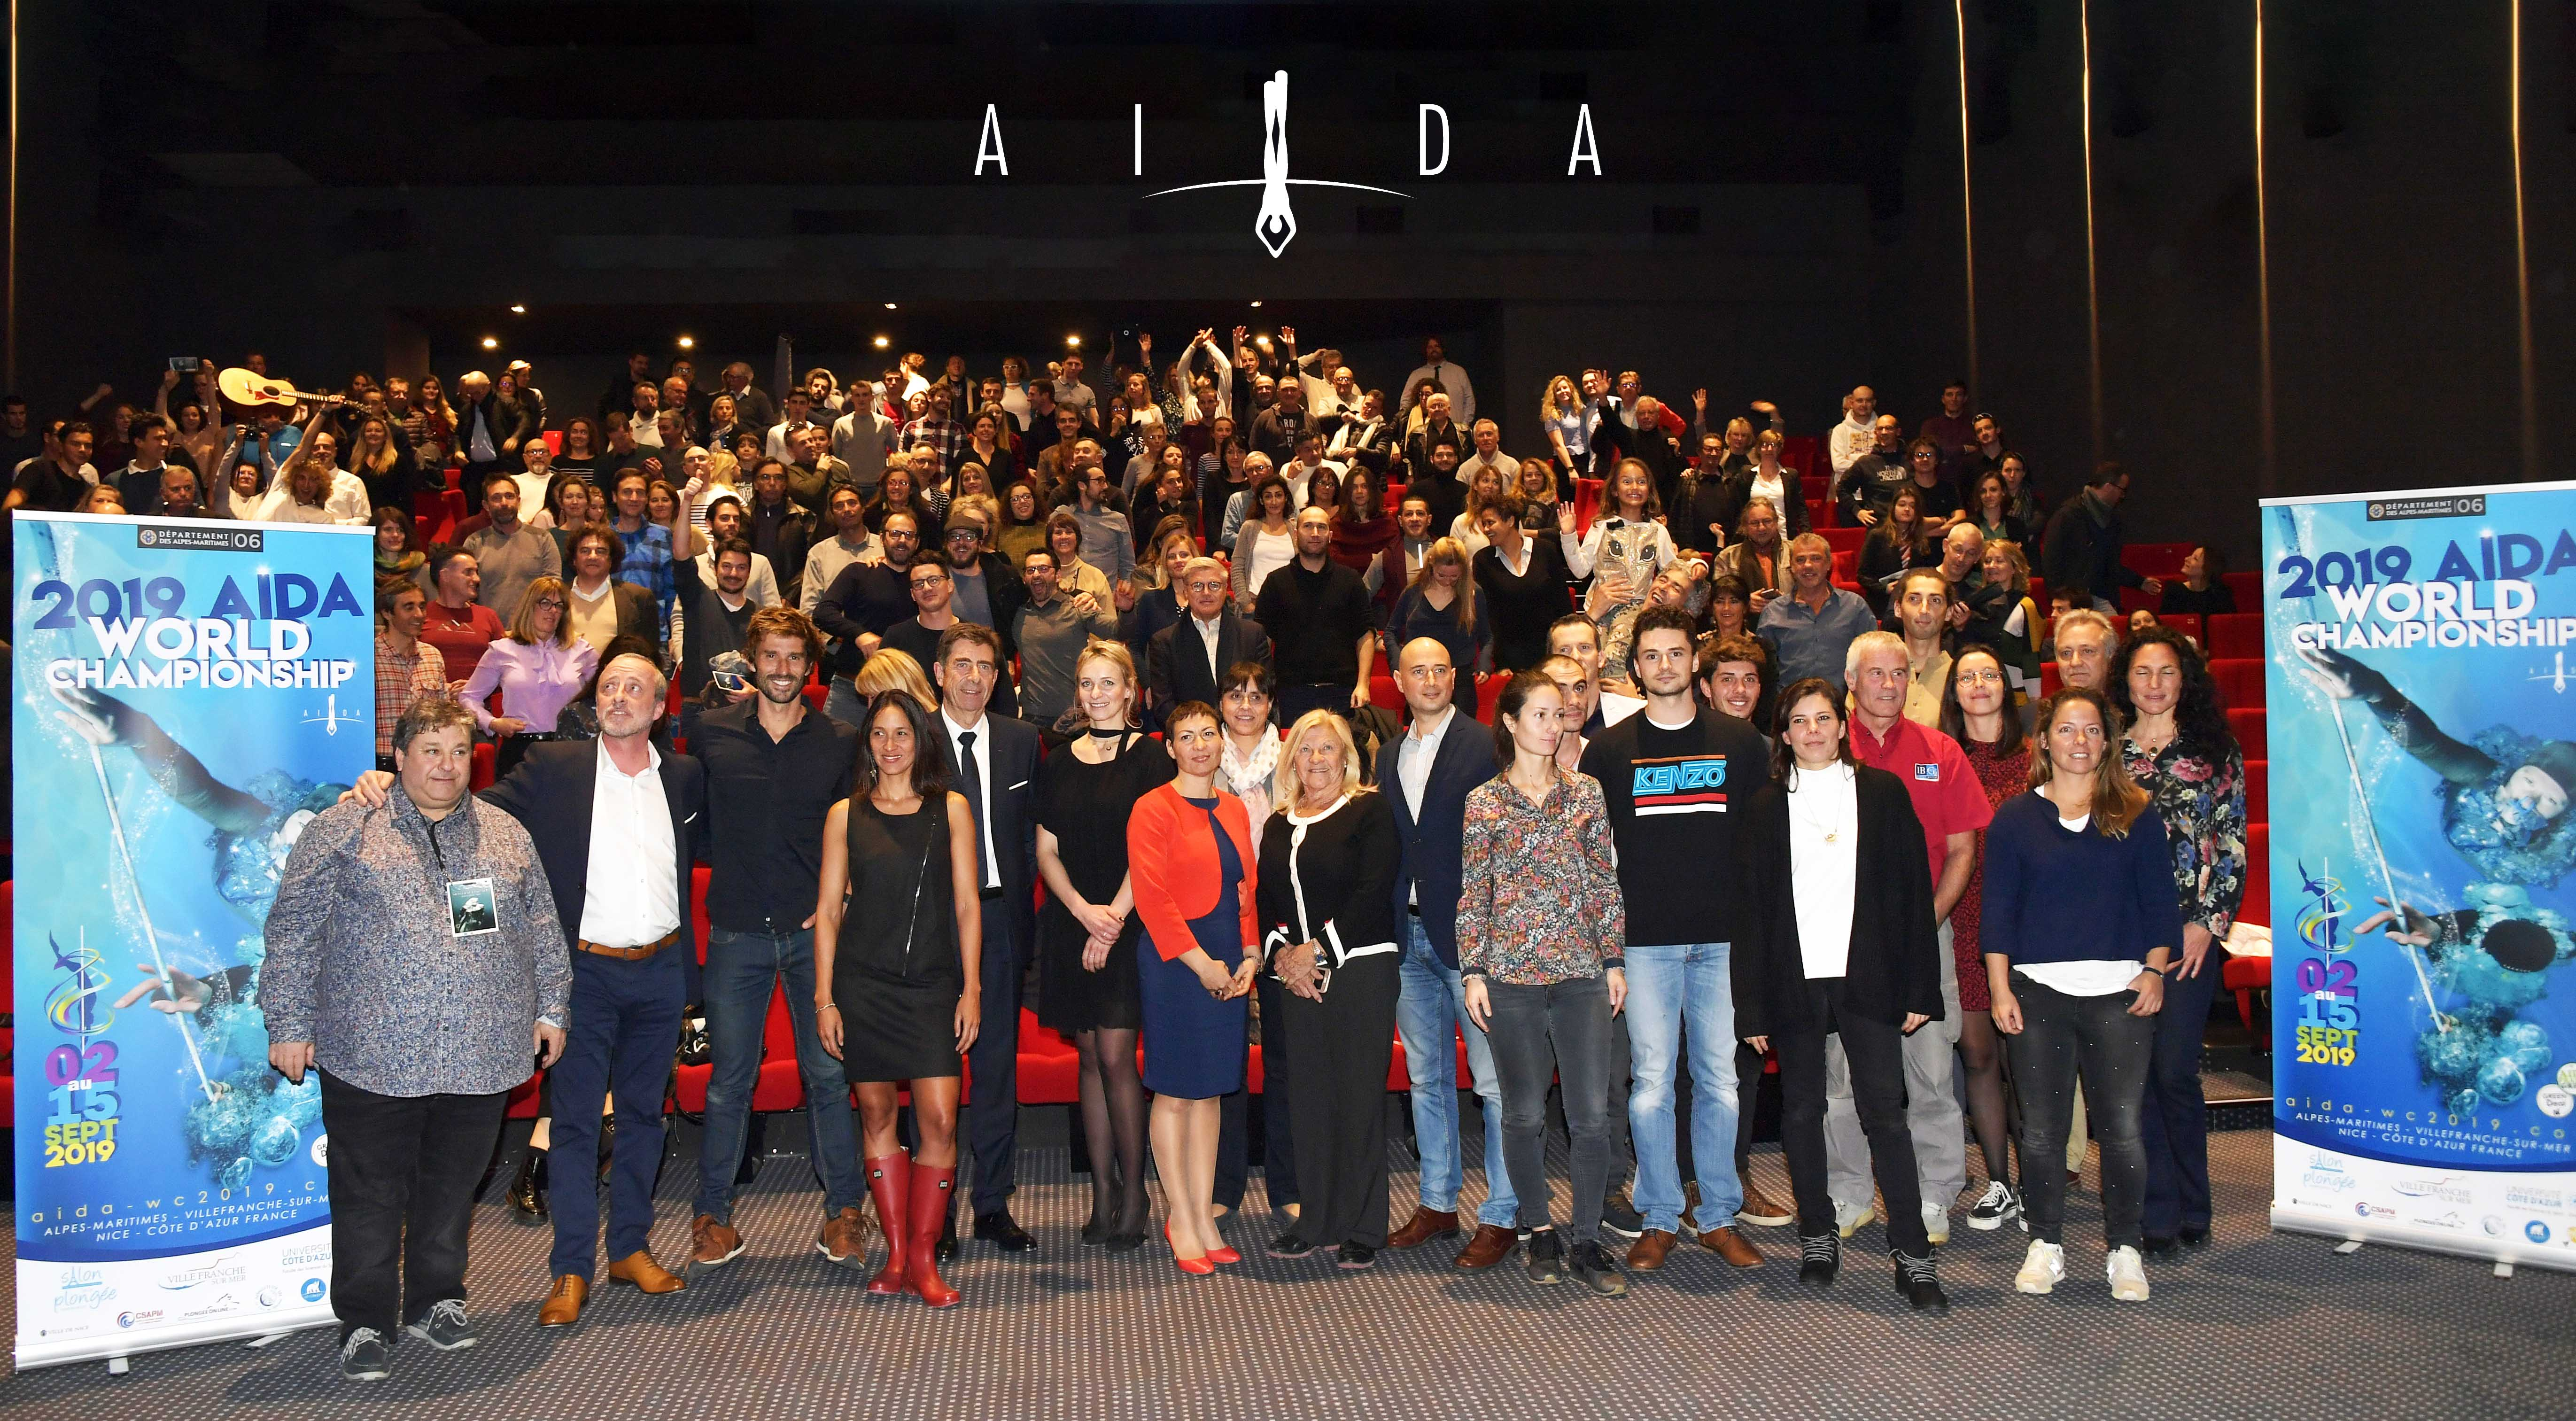 The launch event for the 2019 AIDA World Championships was attended by 300 people.